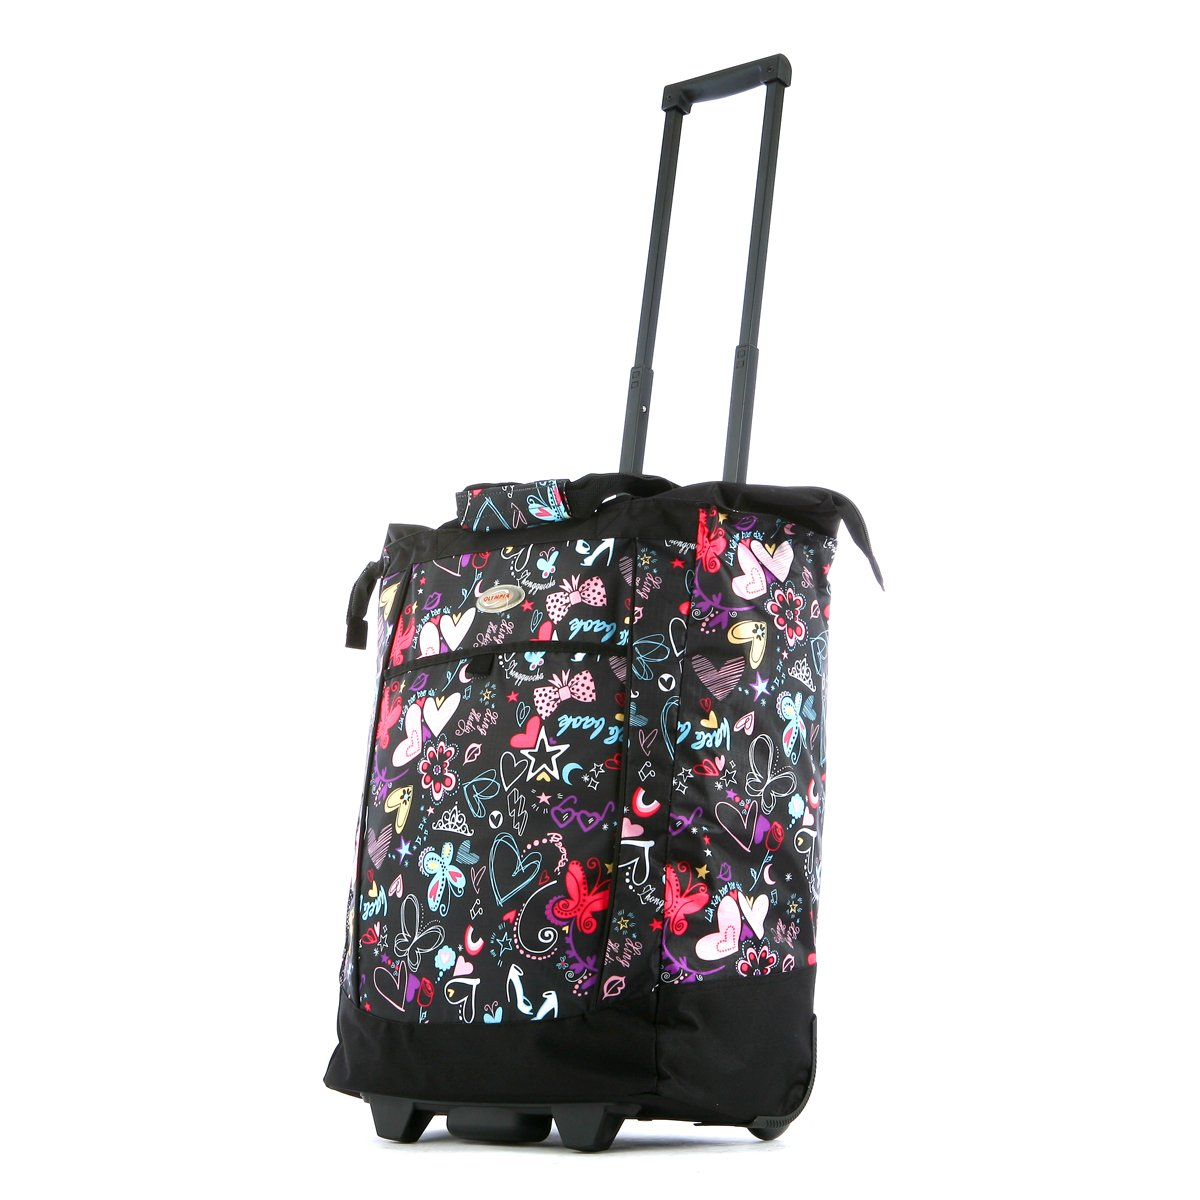 Olympia Fashion Rolling Shopper Tote - Butterfly, 2300 cu. in. by Olympia